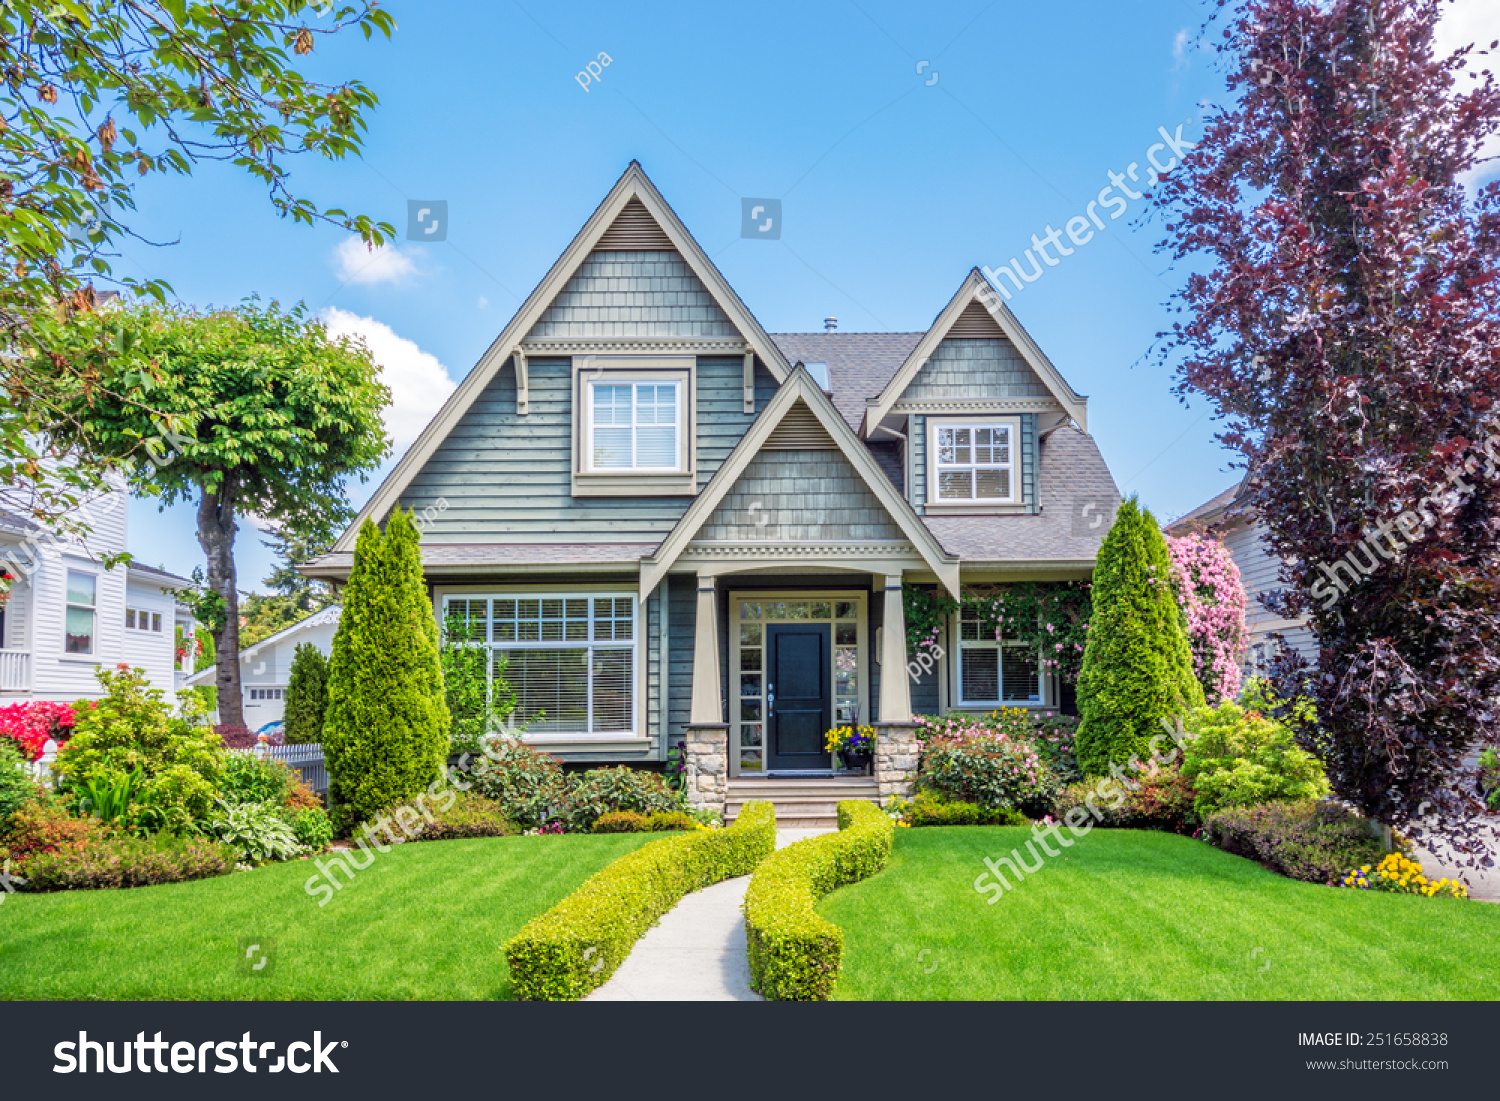 Cozy house beautiful landscaping on sunny 251658838 for Home pic